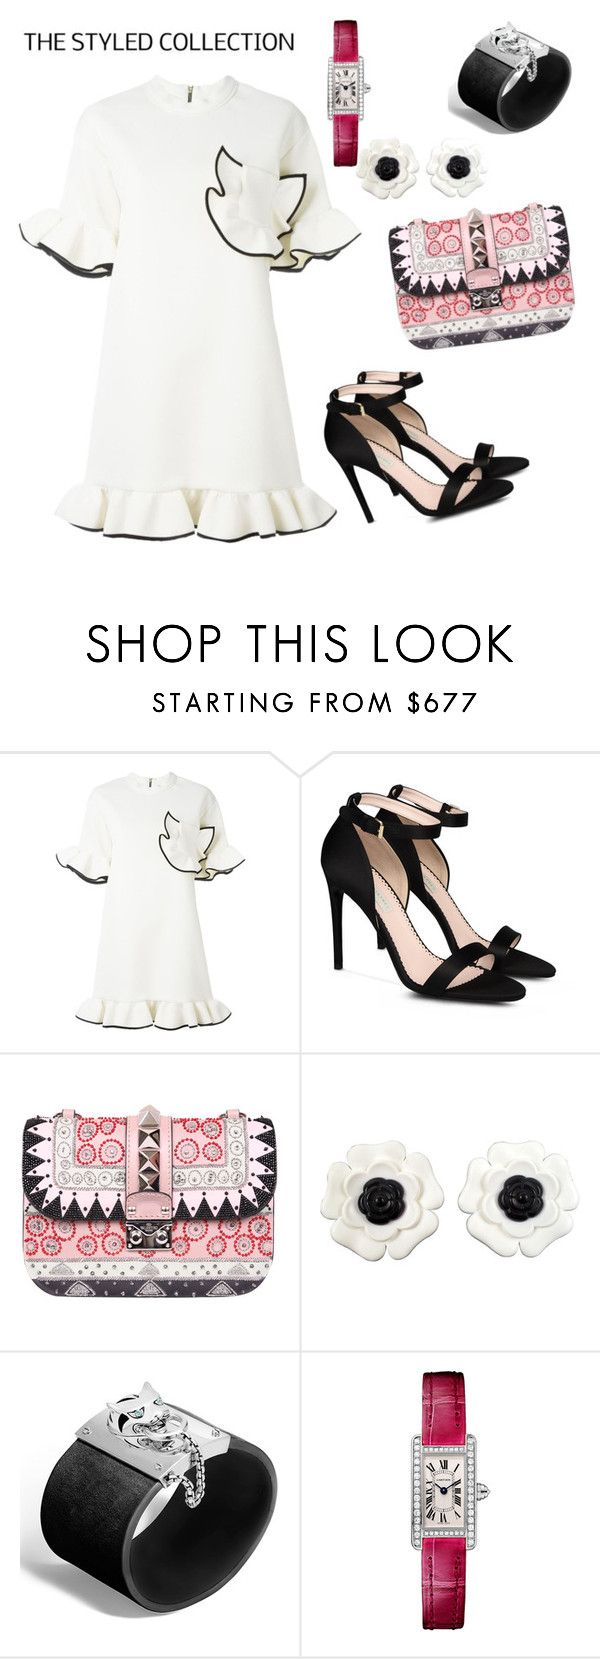 """Untitled #86"" by brabo-brbr ❤ liked on Polyvore featuring Marni, STELLA McCARTNEY, Valentino, Chanel, John Hardy and Cartier"